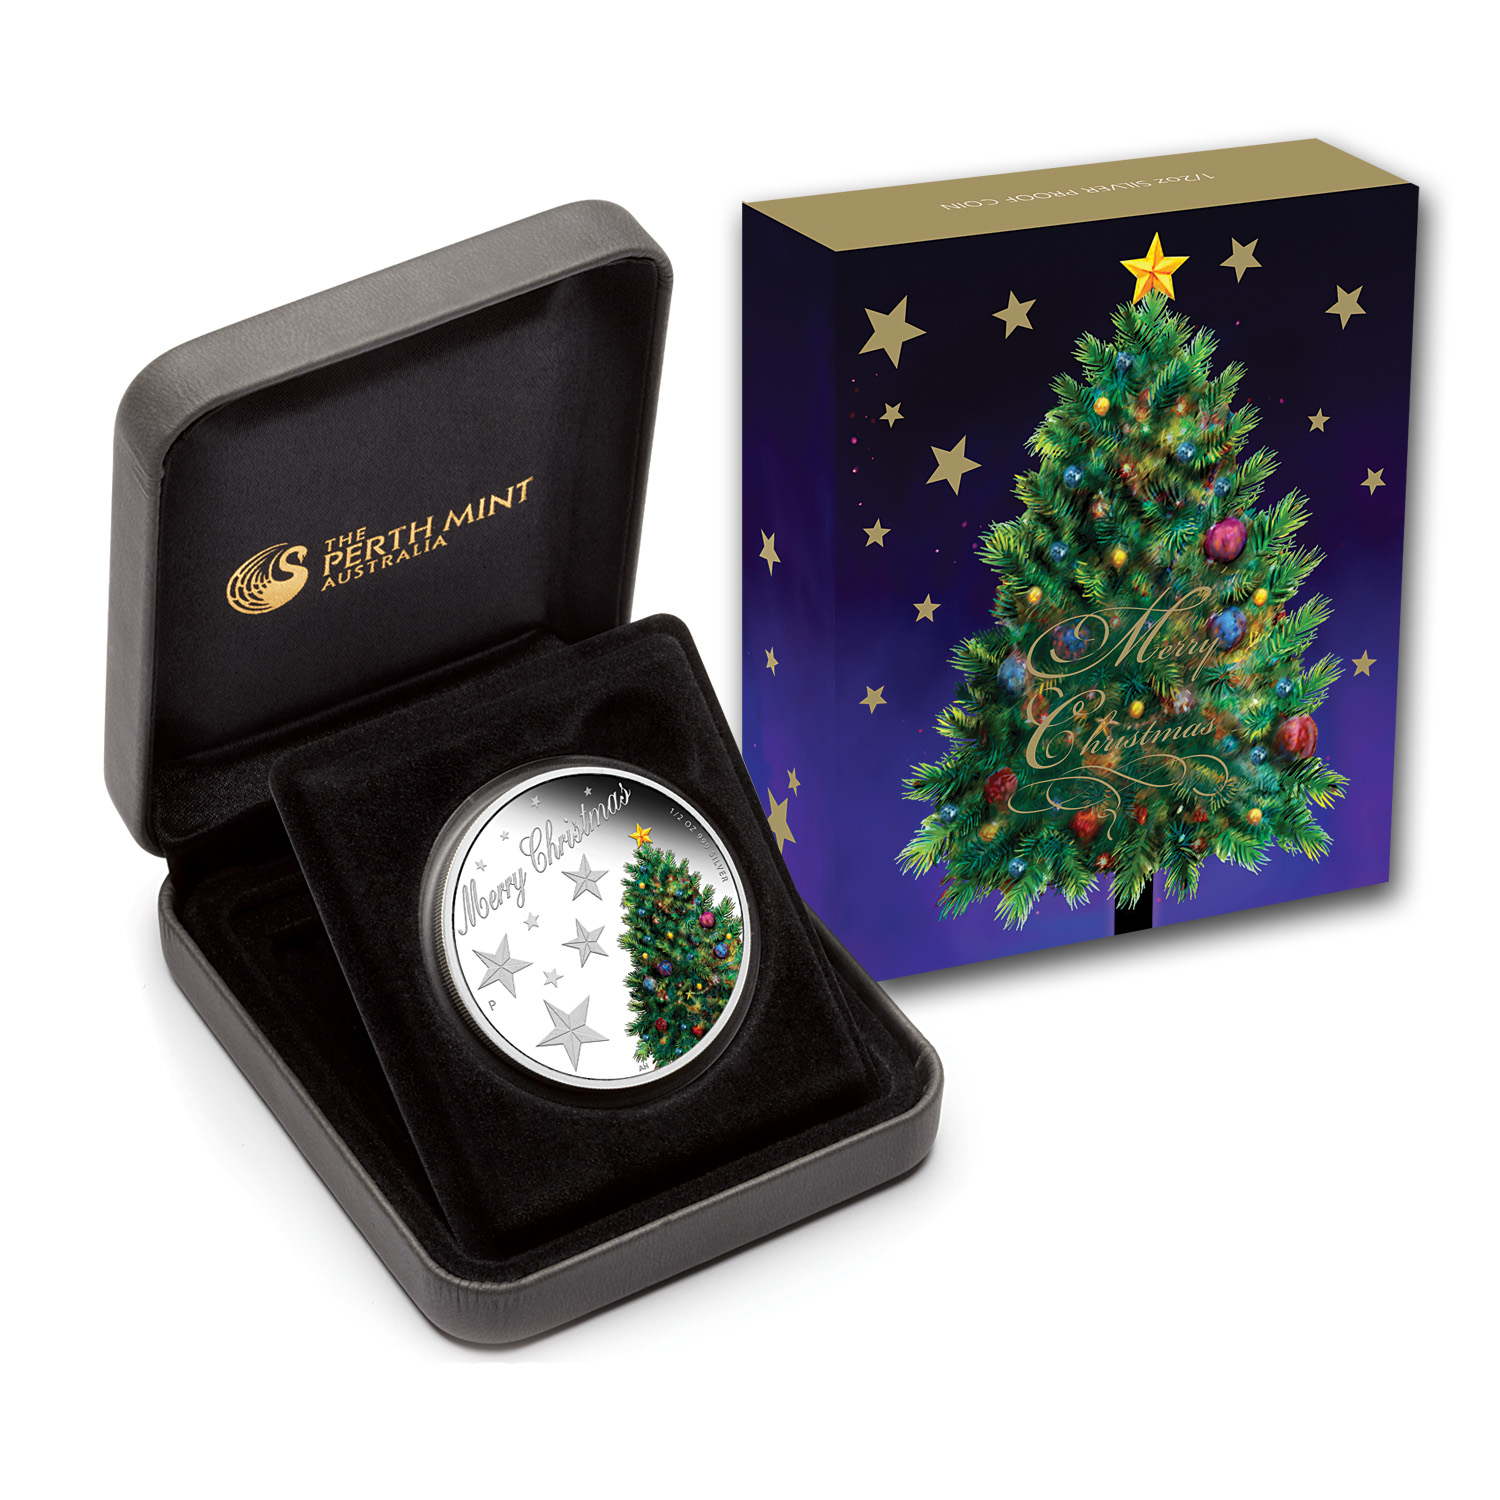 2013 Australia 1/2 oz Silver Christmas Proof